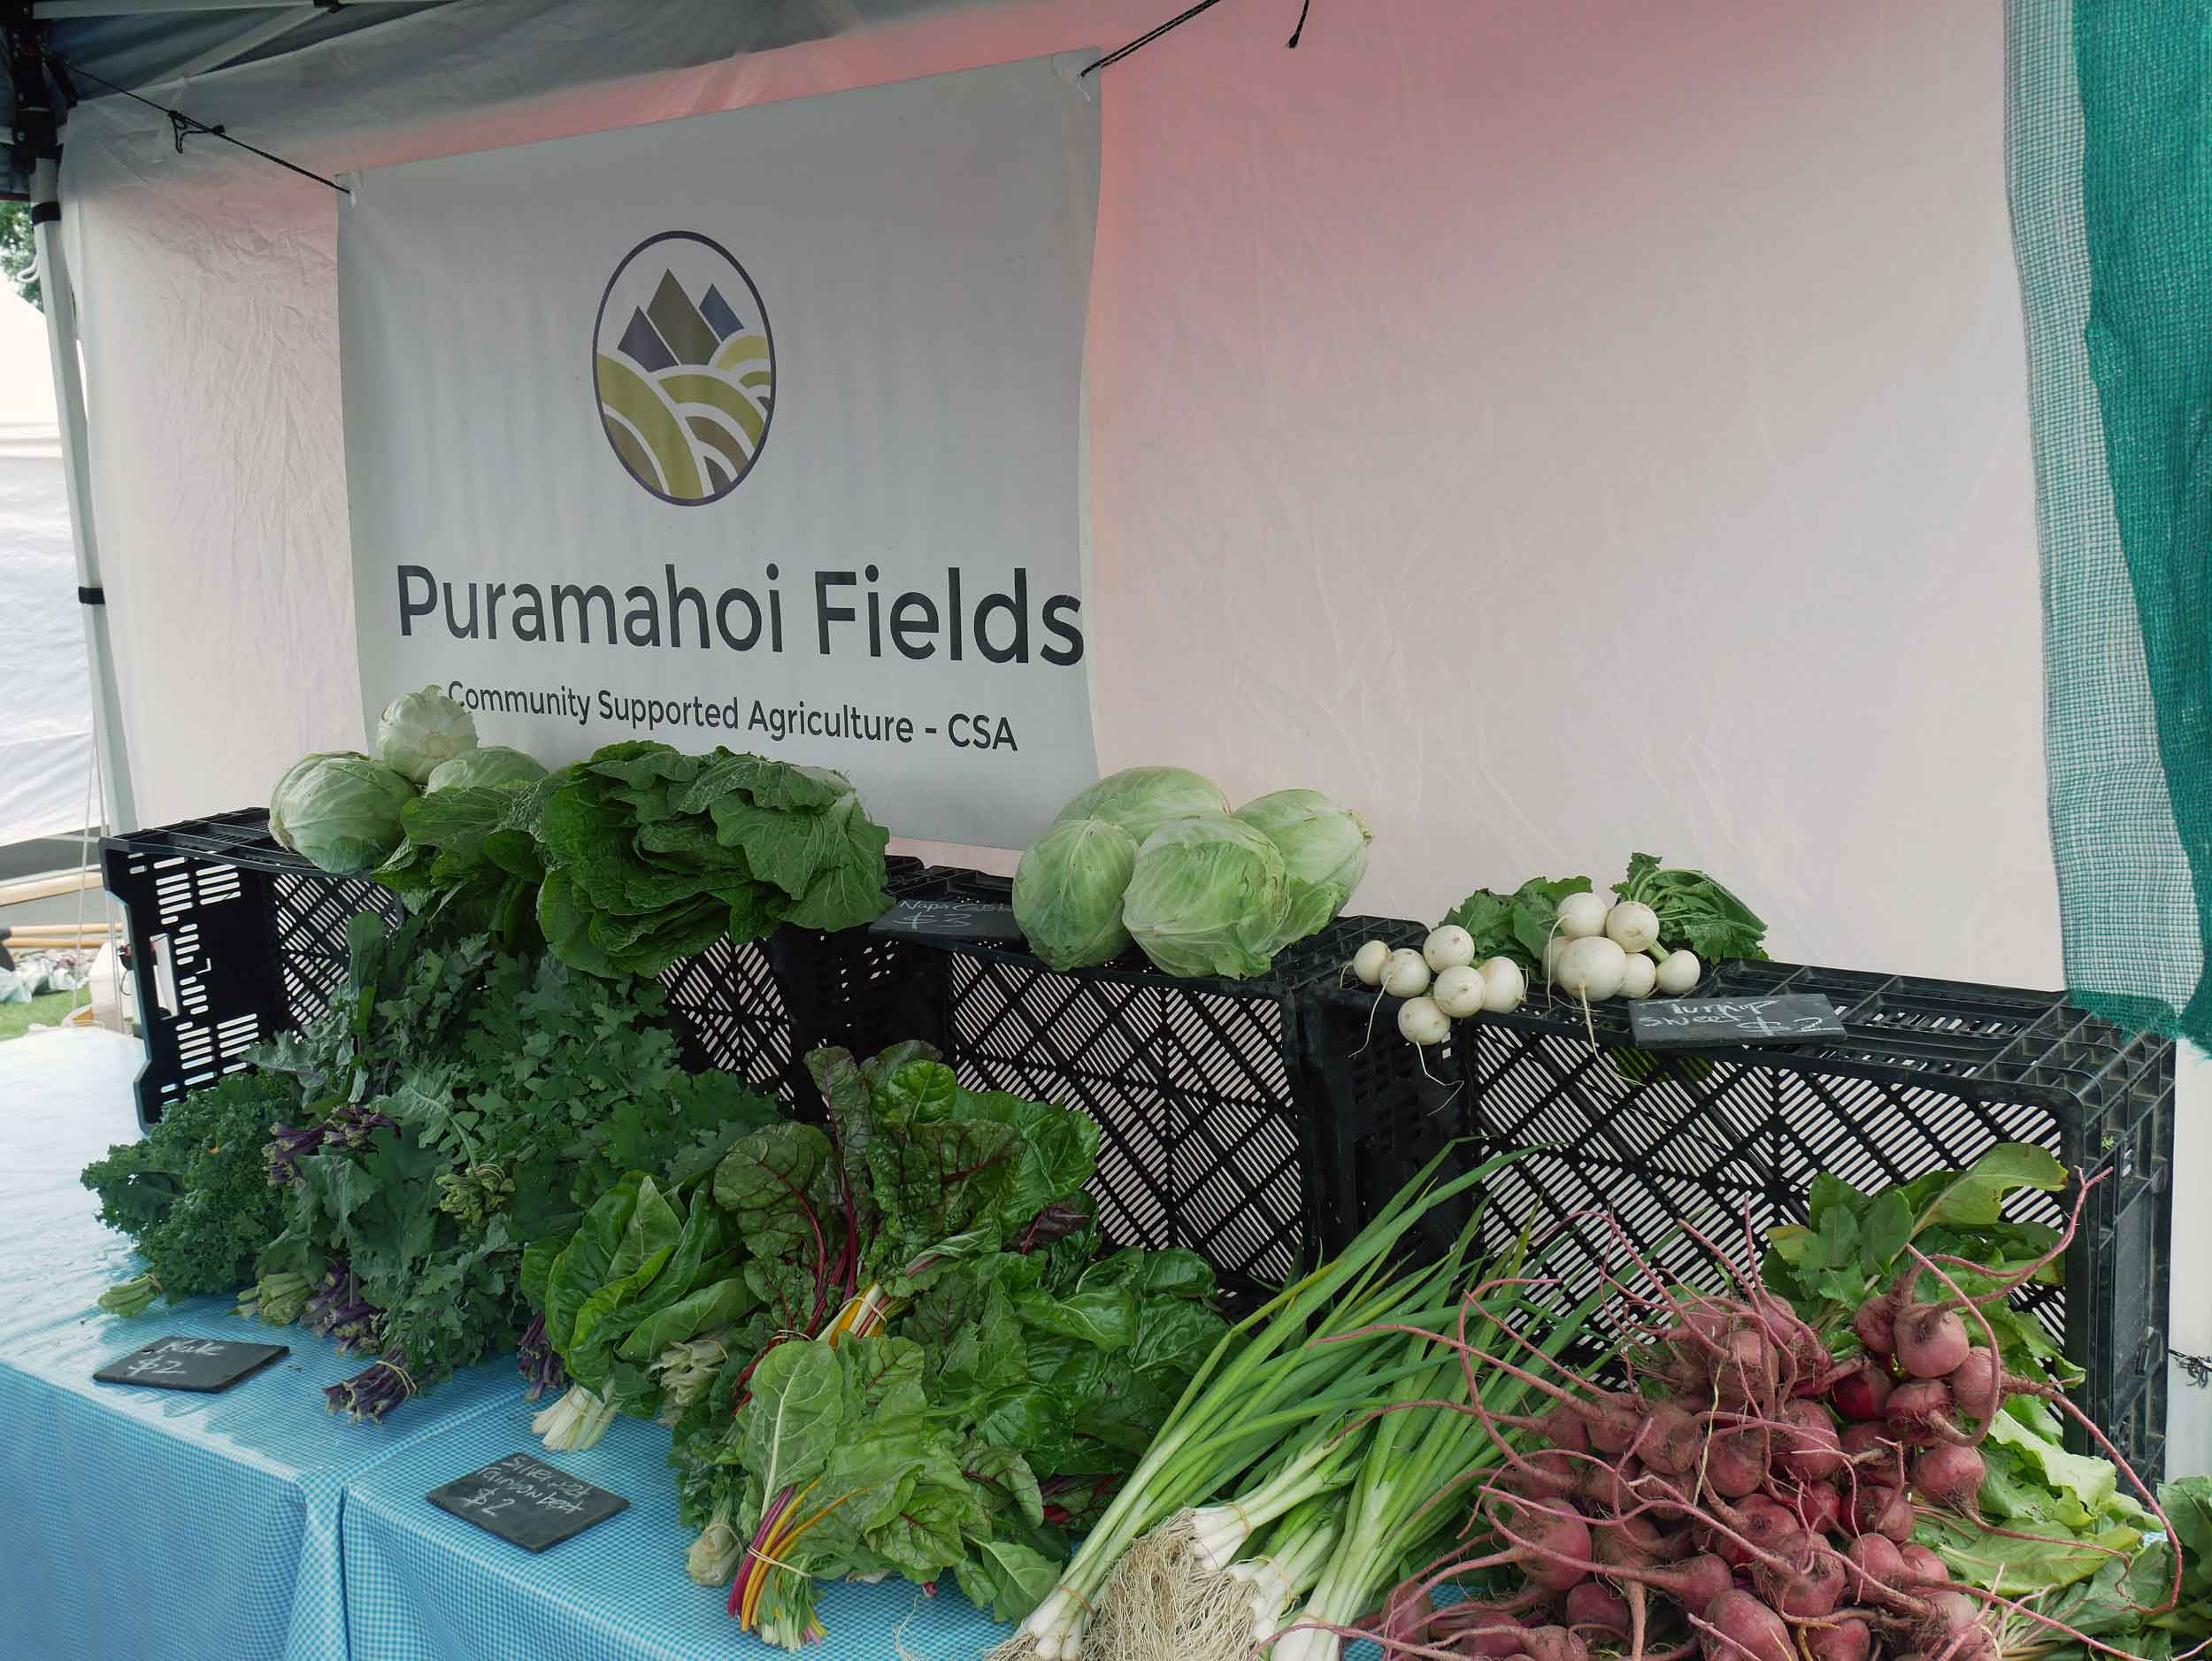 The beautiful bounty for sale from Puramahoi Fields.